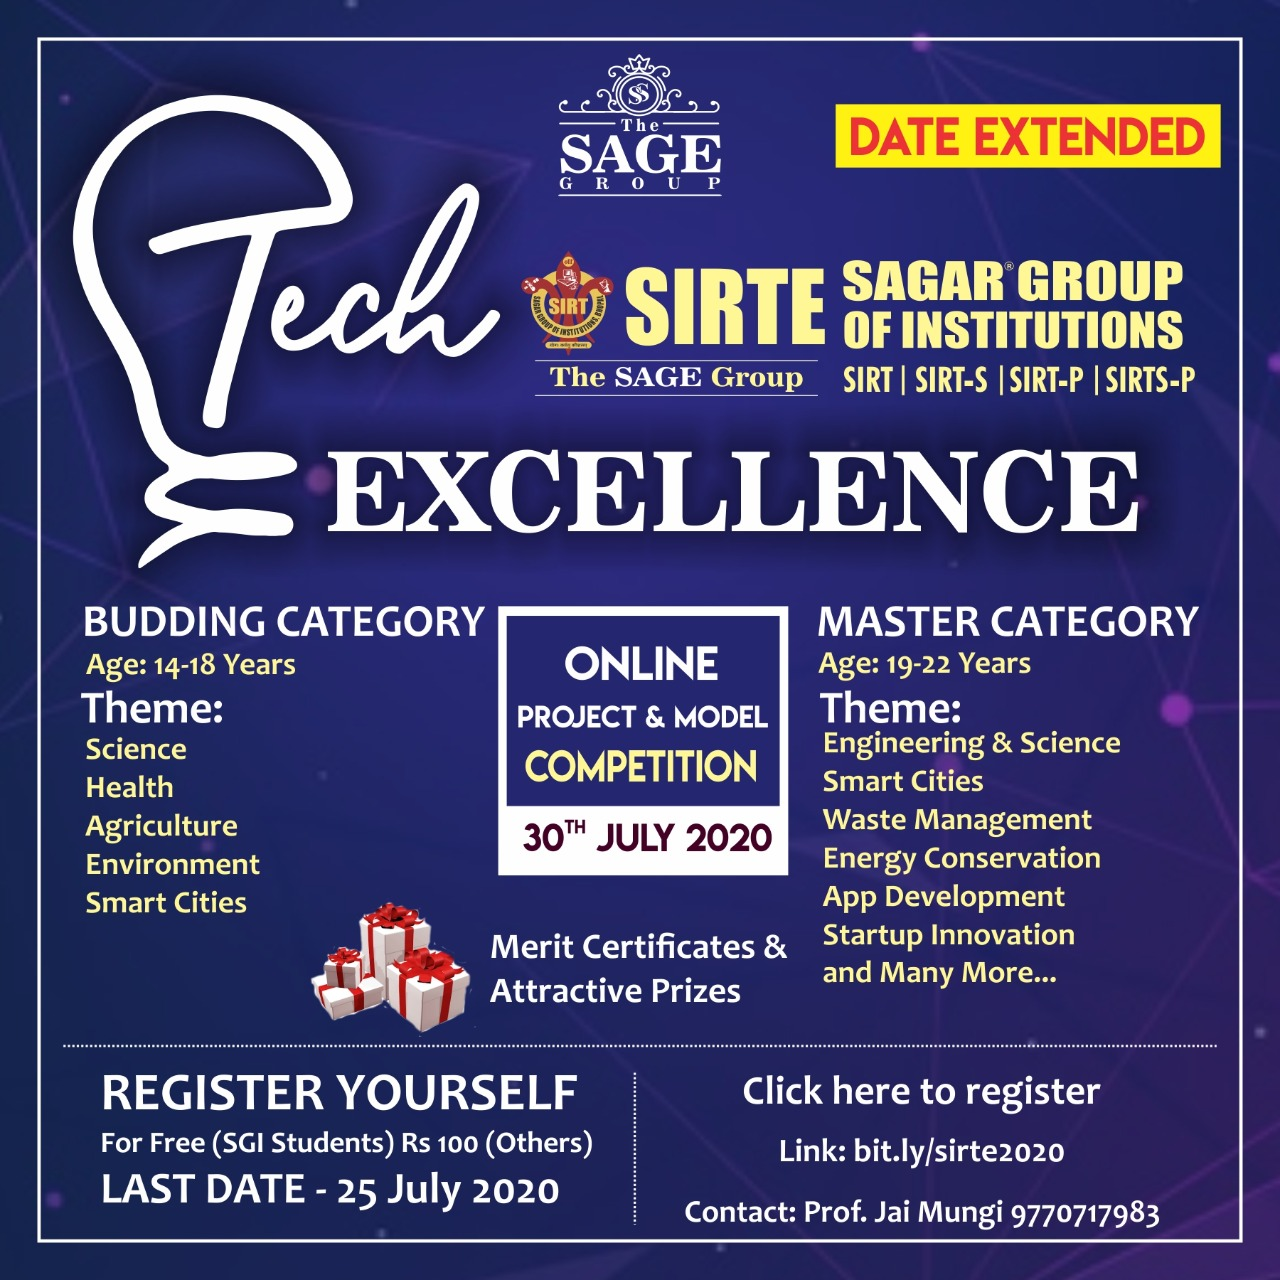 Tech-Excellence 2020 - Online Project & Model Competition